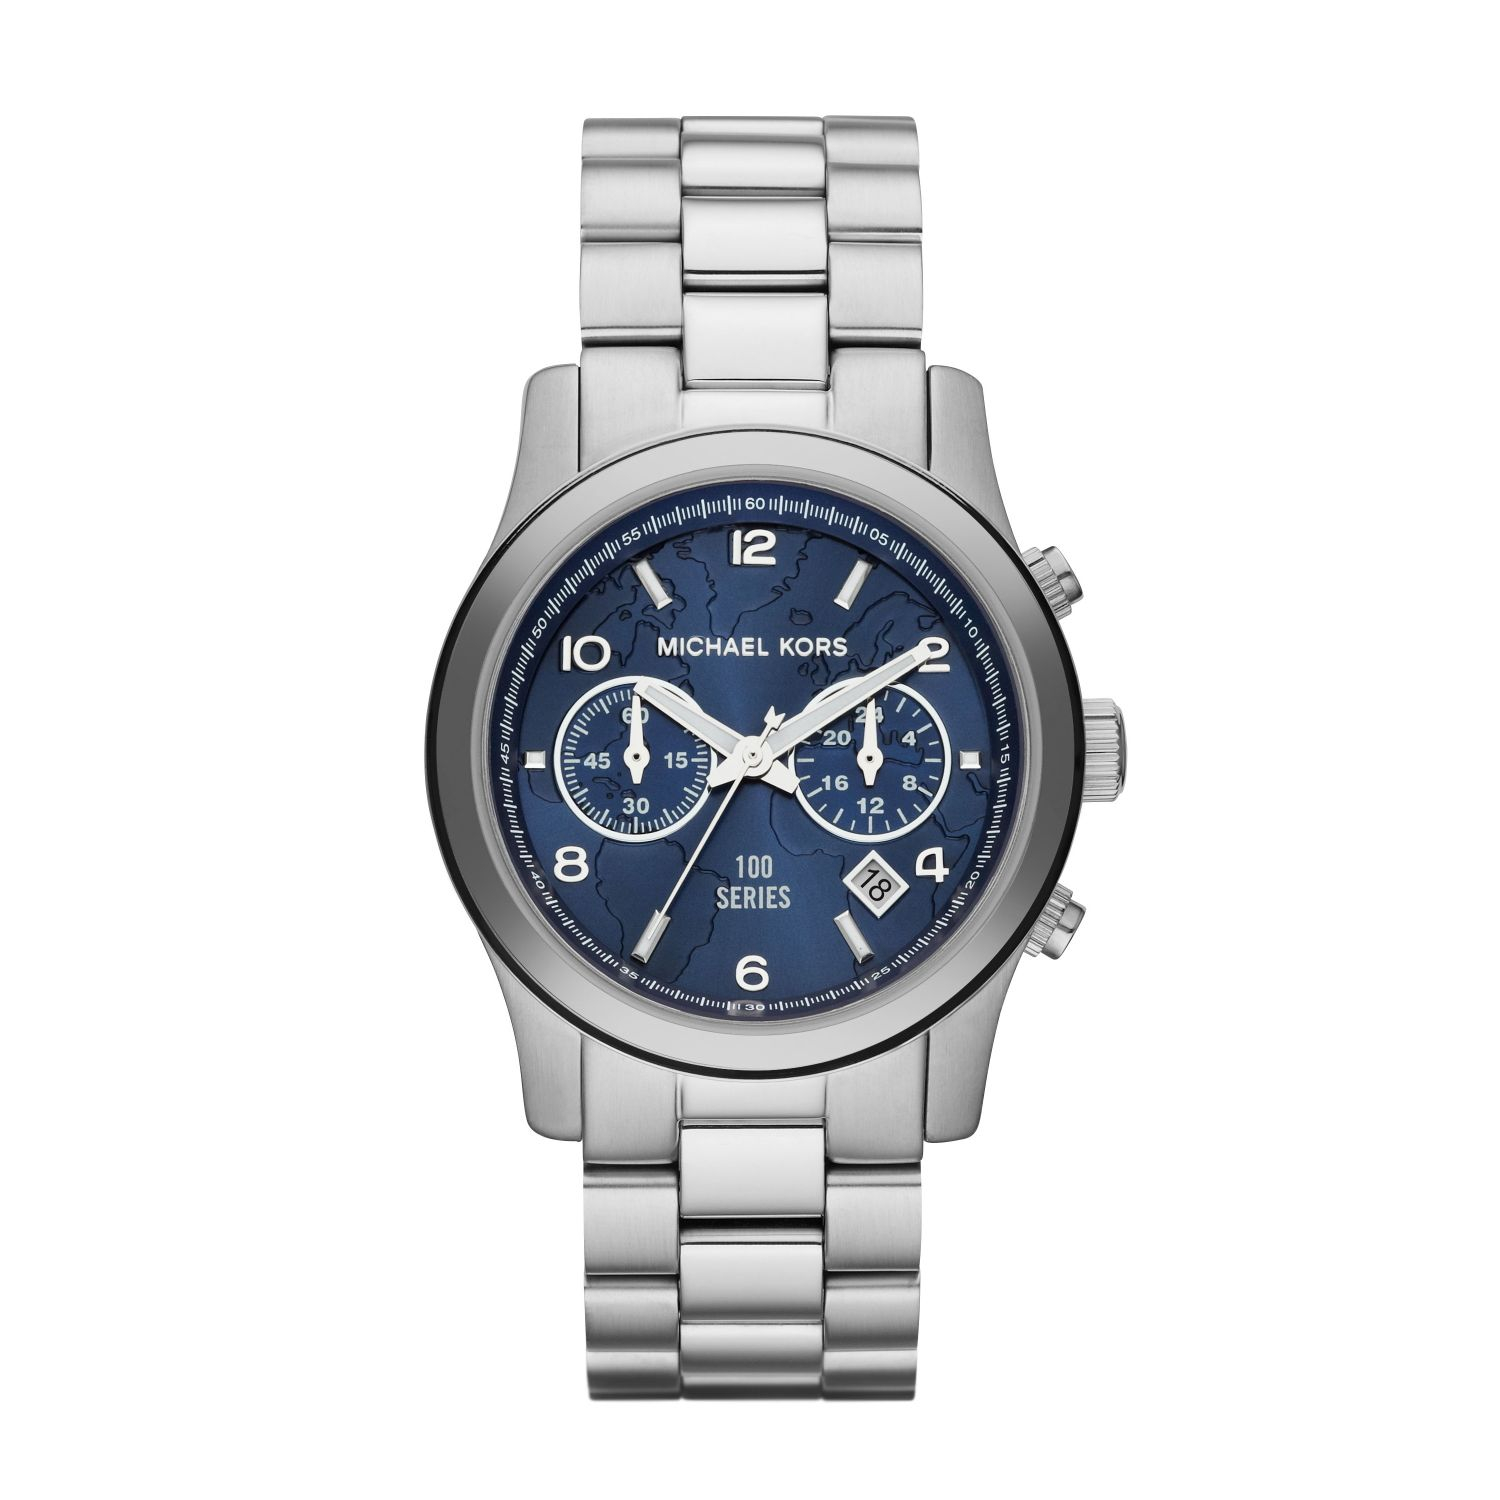 Michael kors Watch Hunger Stop Runway Silver-tone Watch in ...